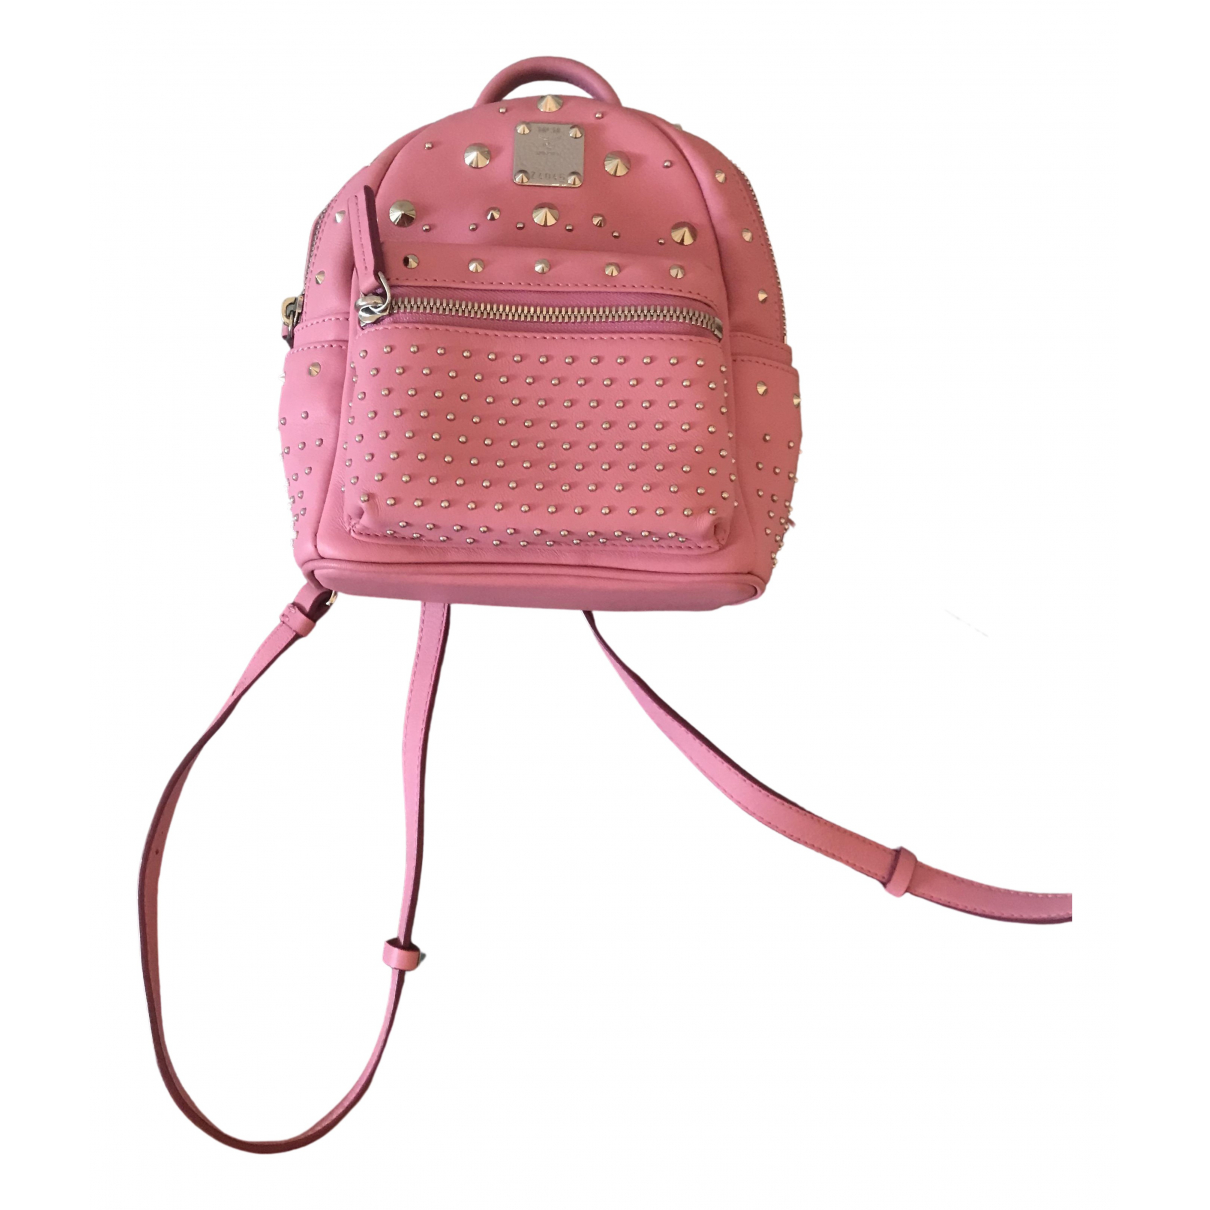 Mcm Stark Pink Leather backpack for Women N